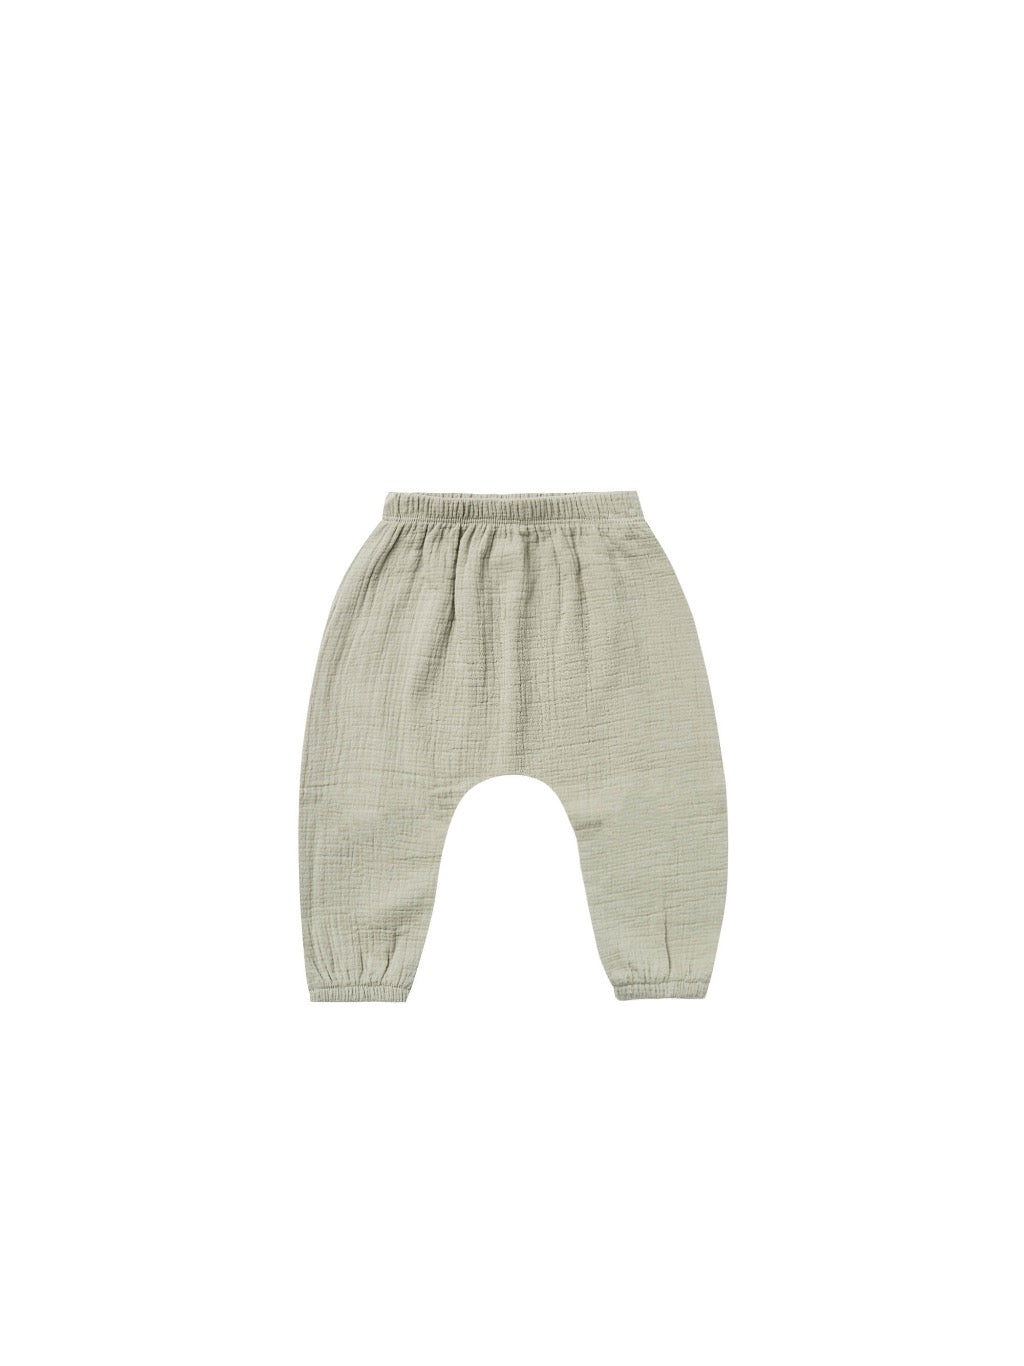 Quincy Mae Woven Harem Pant in Sage